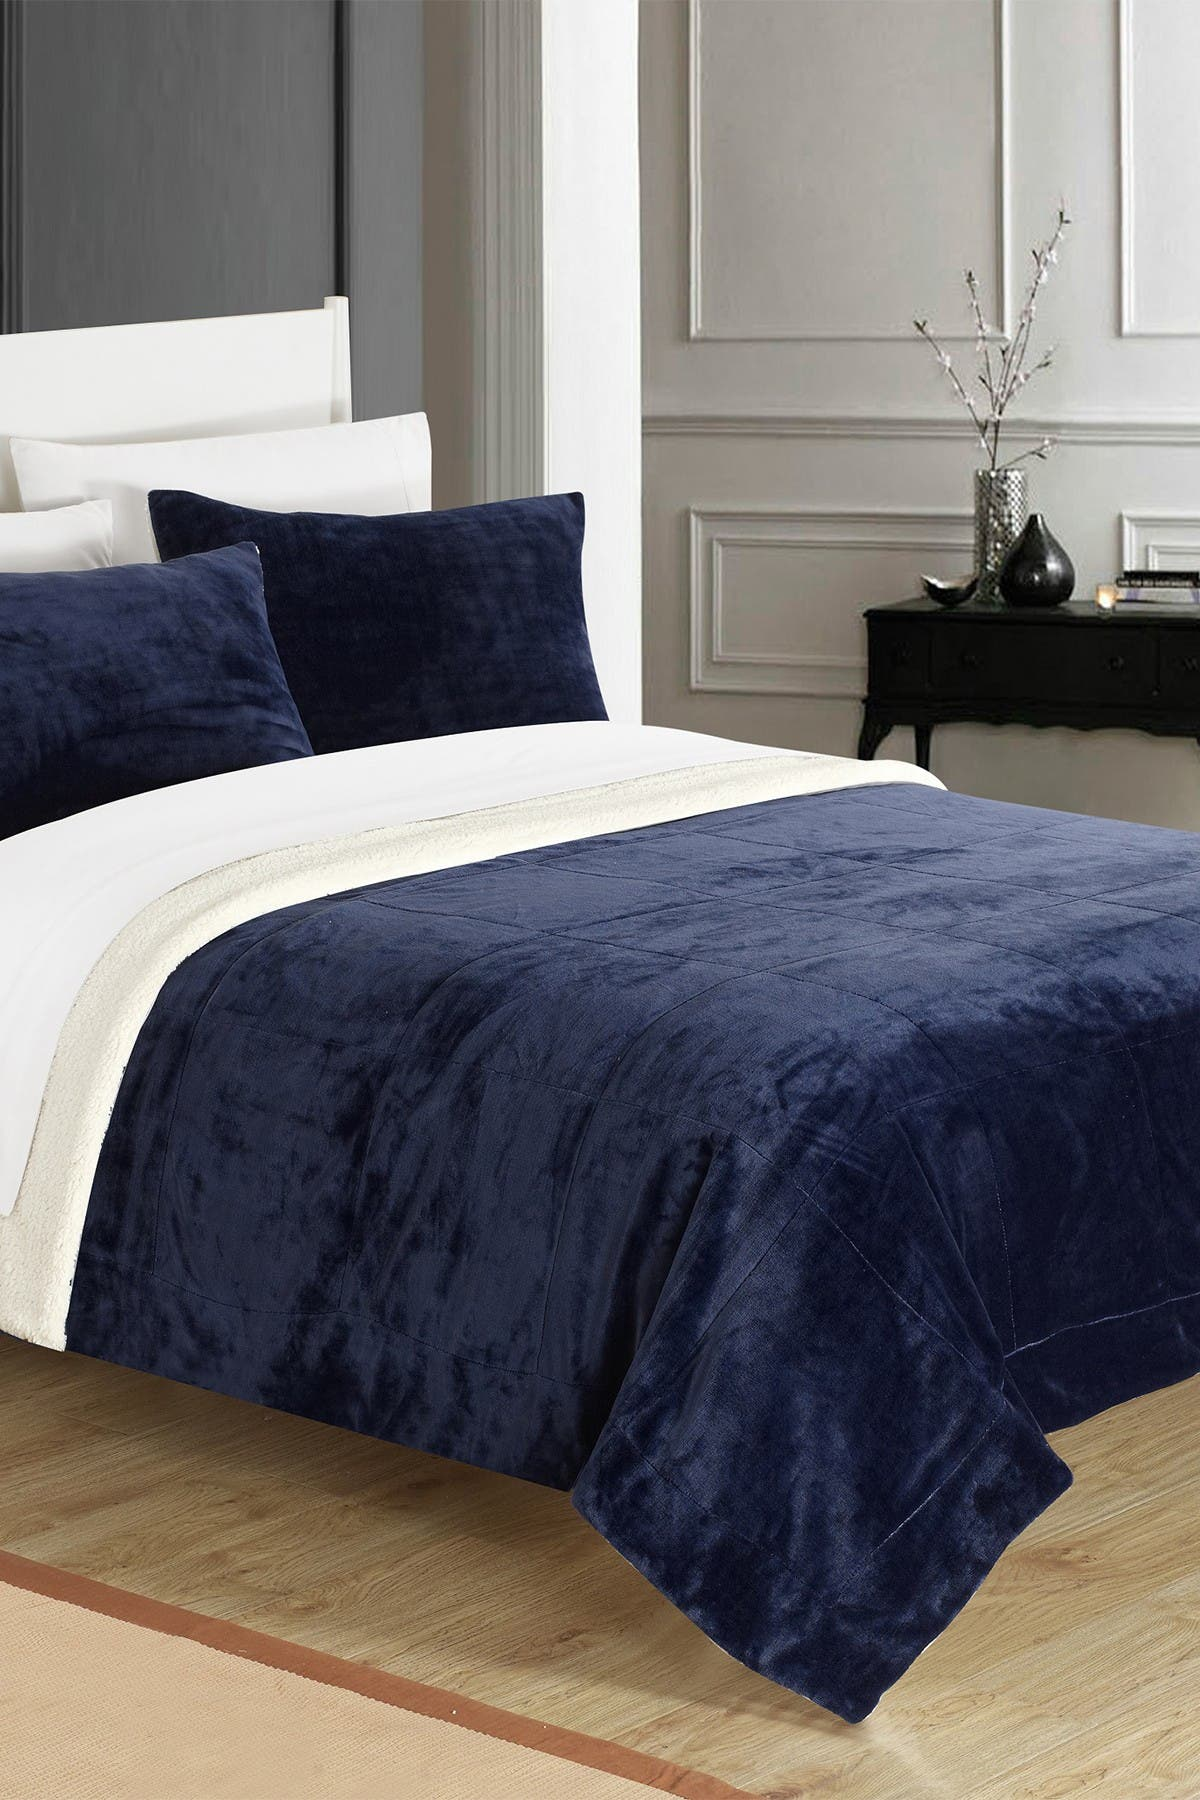 Image of Chic Home Bedding King Evelyn Faux Shearling Blanket Set - Navy